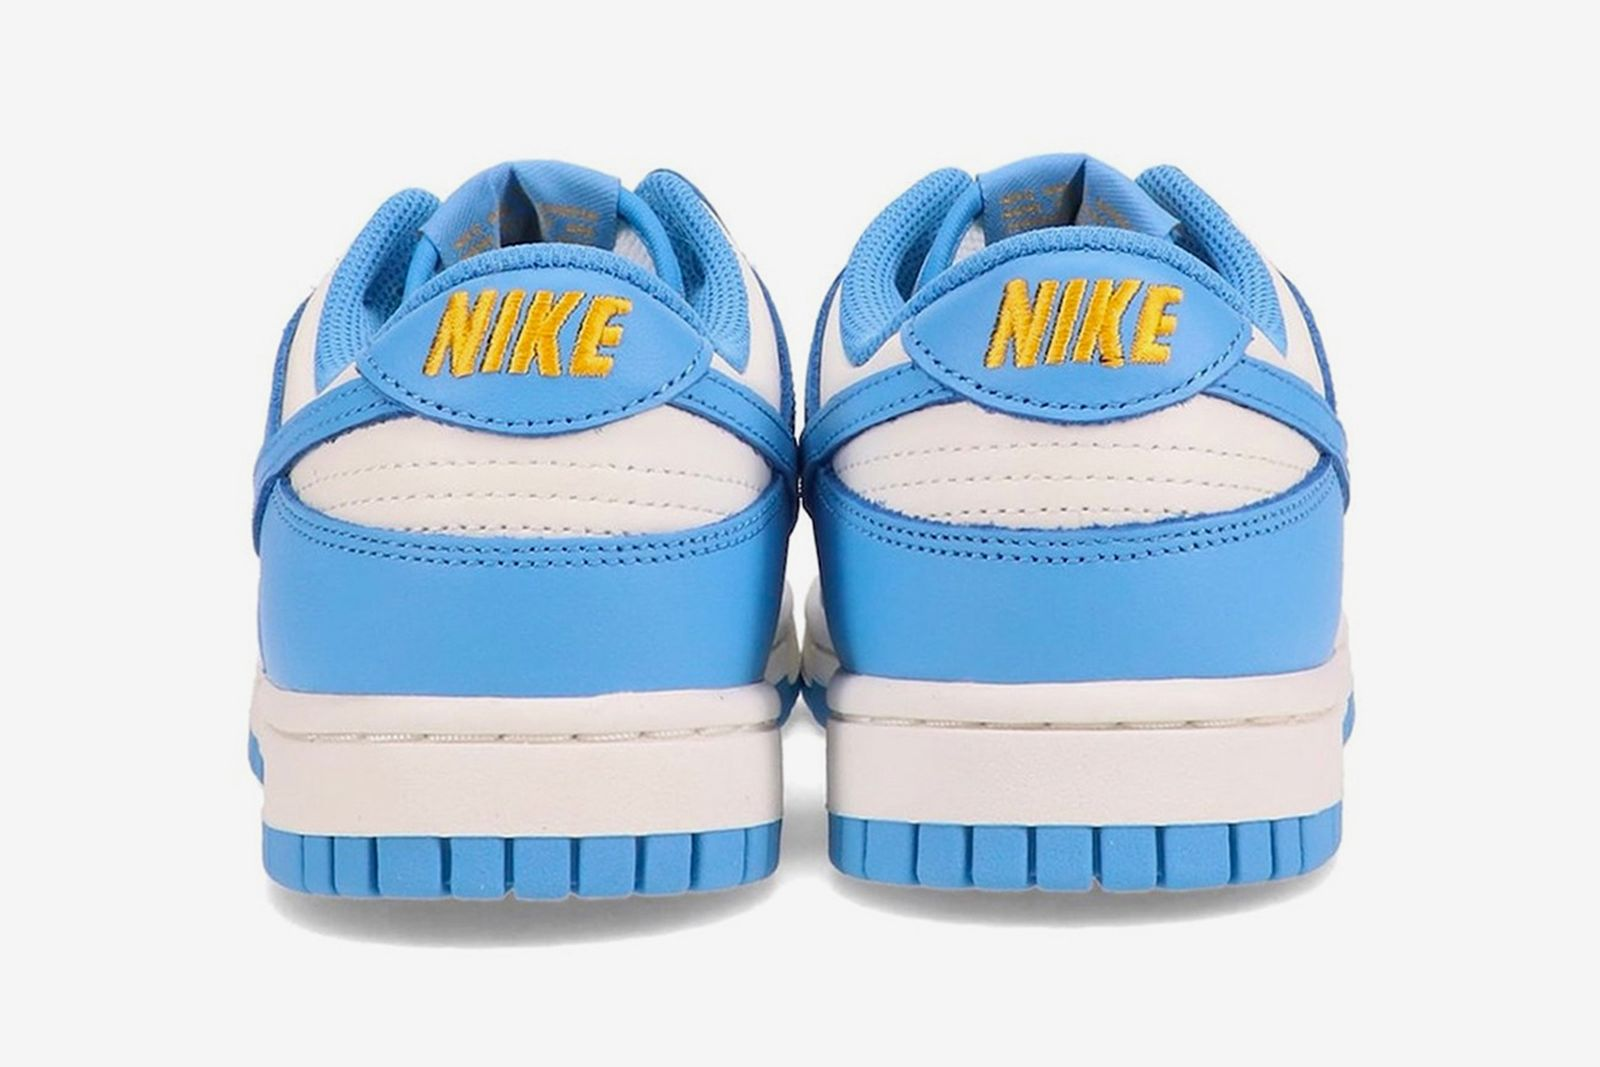 nike-dunks-january-2021-release-date-price-04